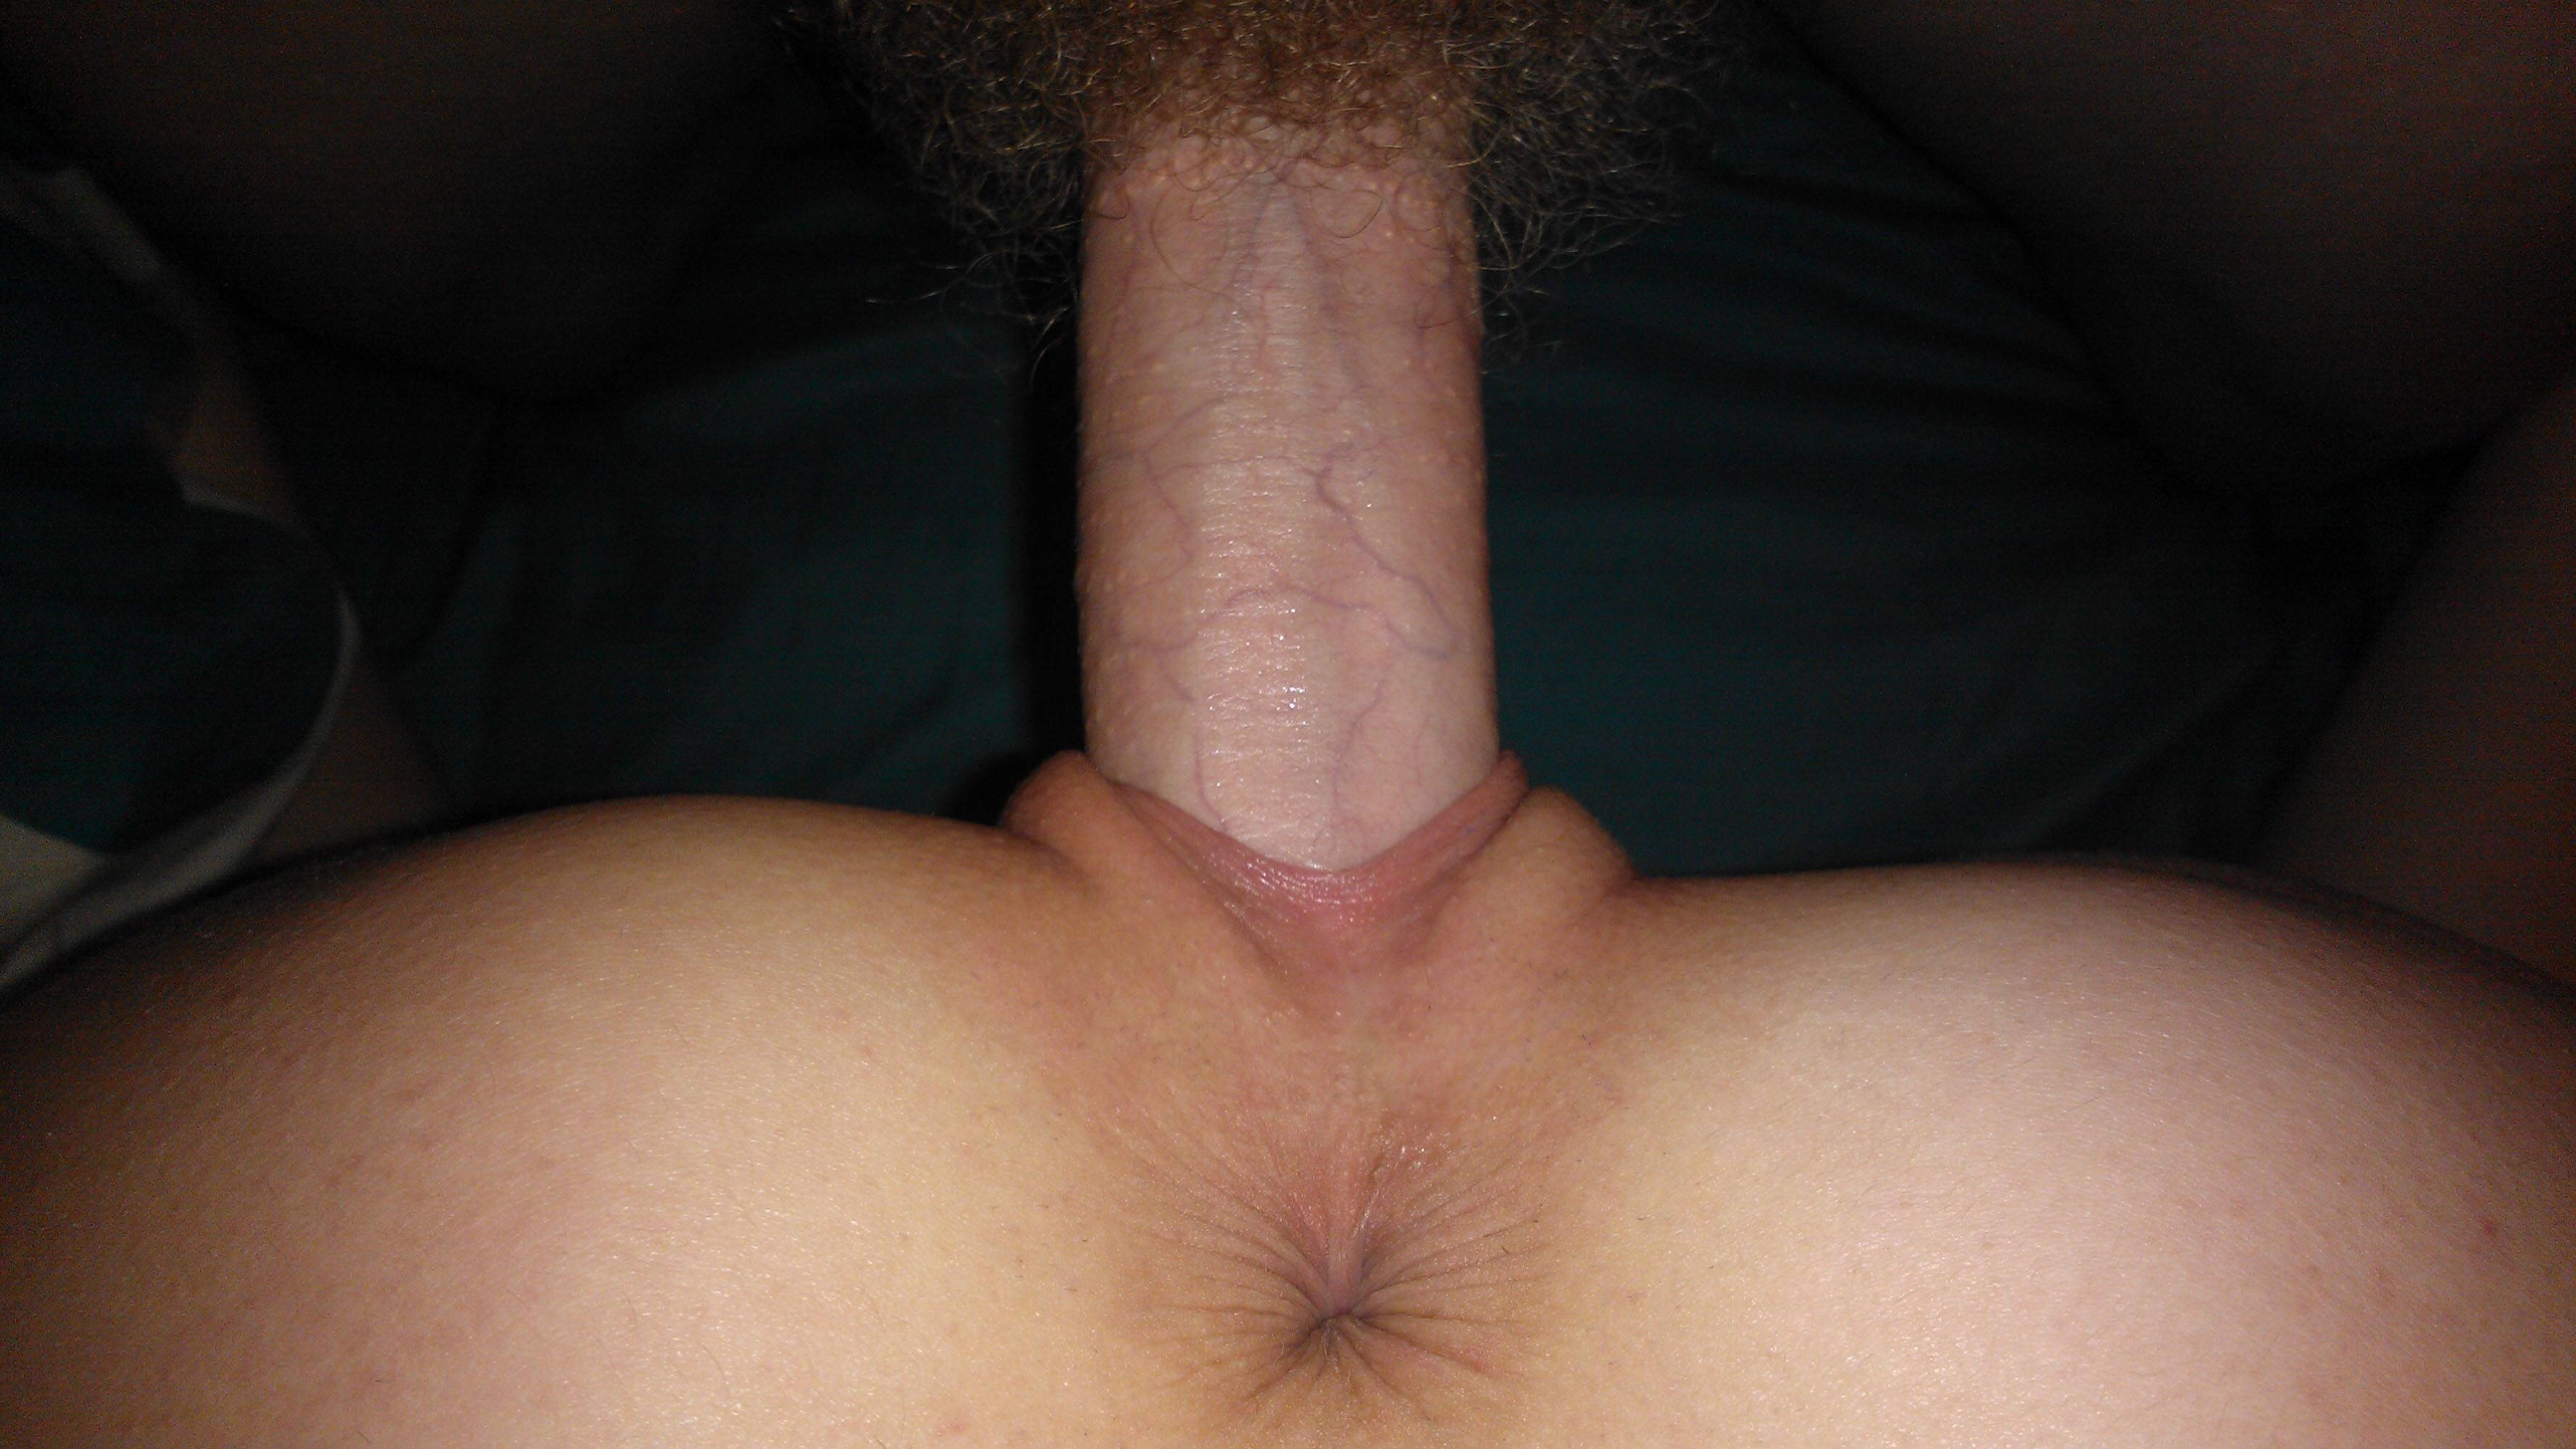 Wife Closeup POV Gets Long Cucumber In Ass Fullhd Porn, Large Labia Download Free Fisting